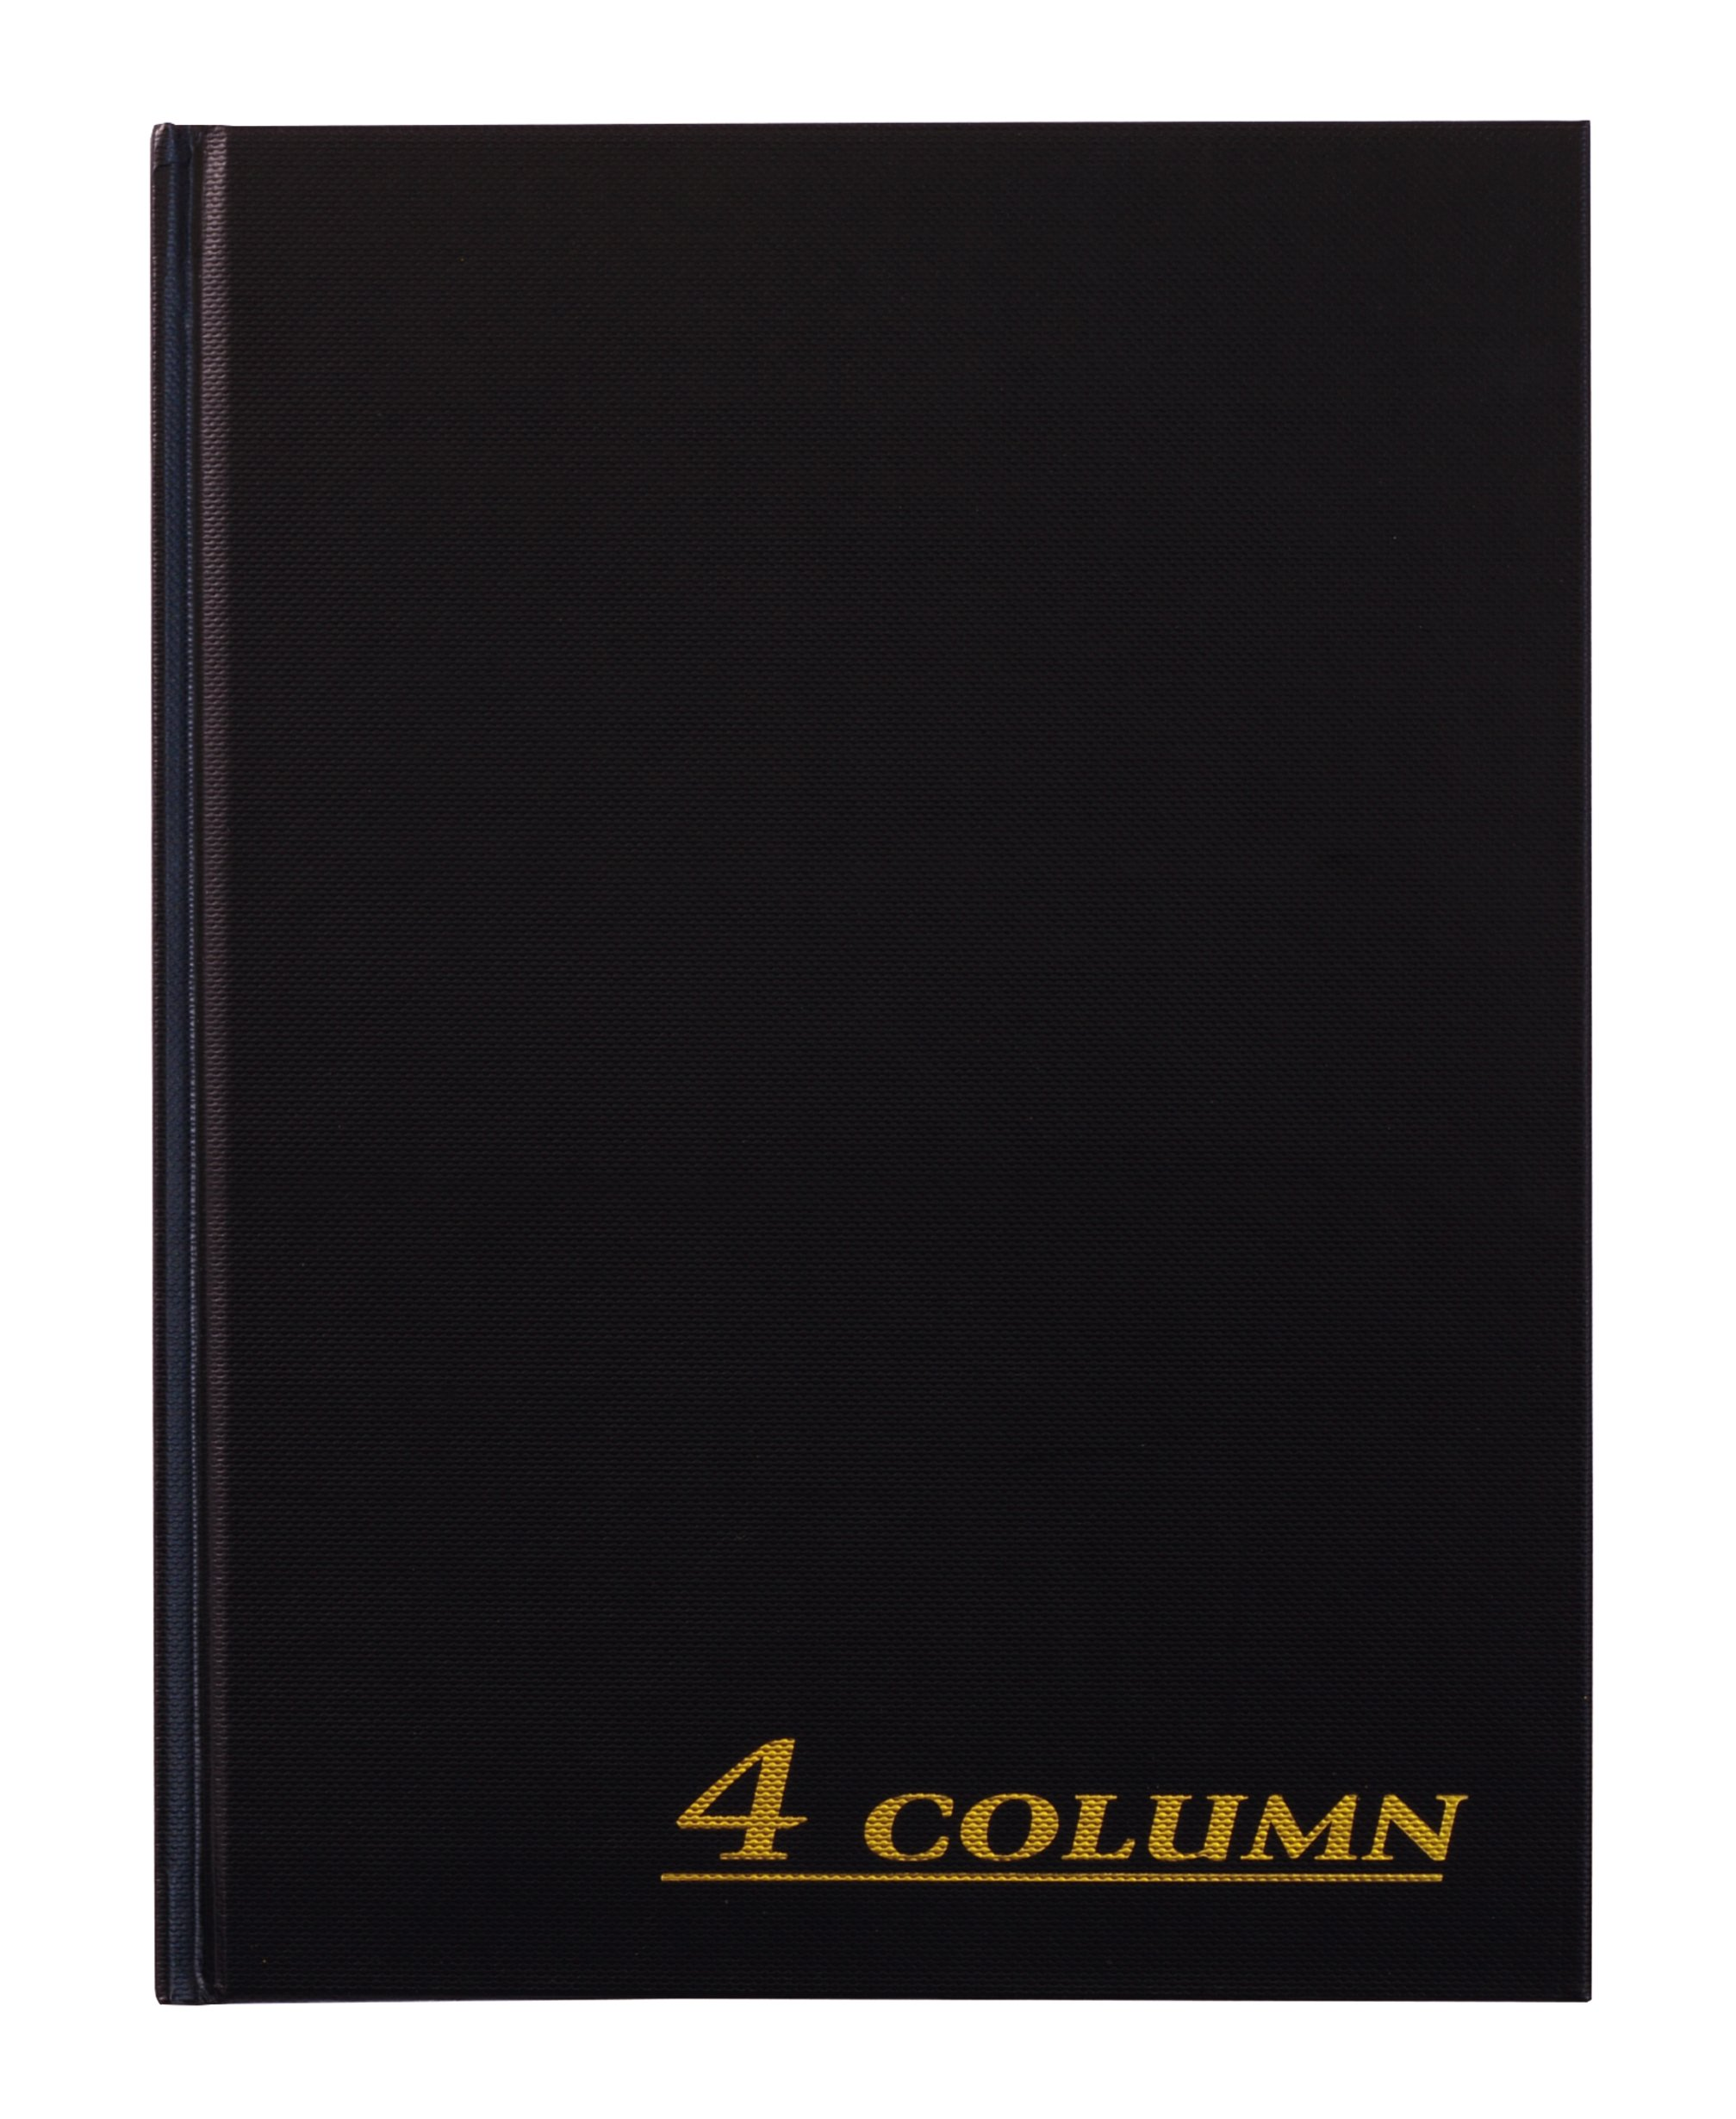 Adams Account Book, 4-Column, Black Cloth Cover, 9.25 x 7 Inches, 80 Pages Per Book (ARB8004M)